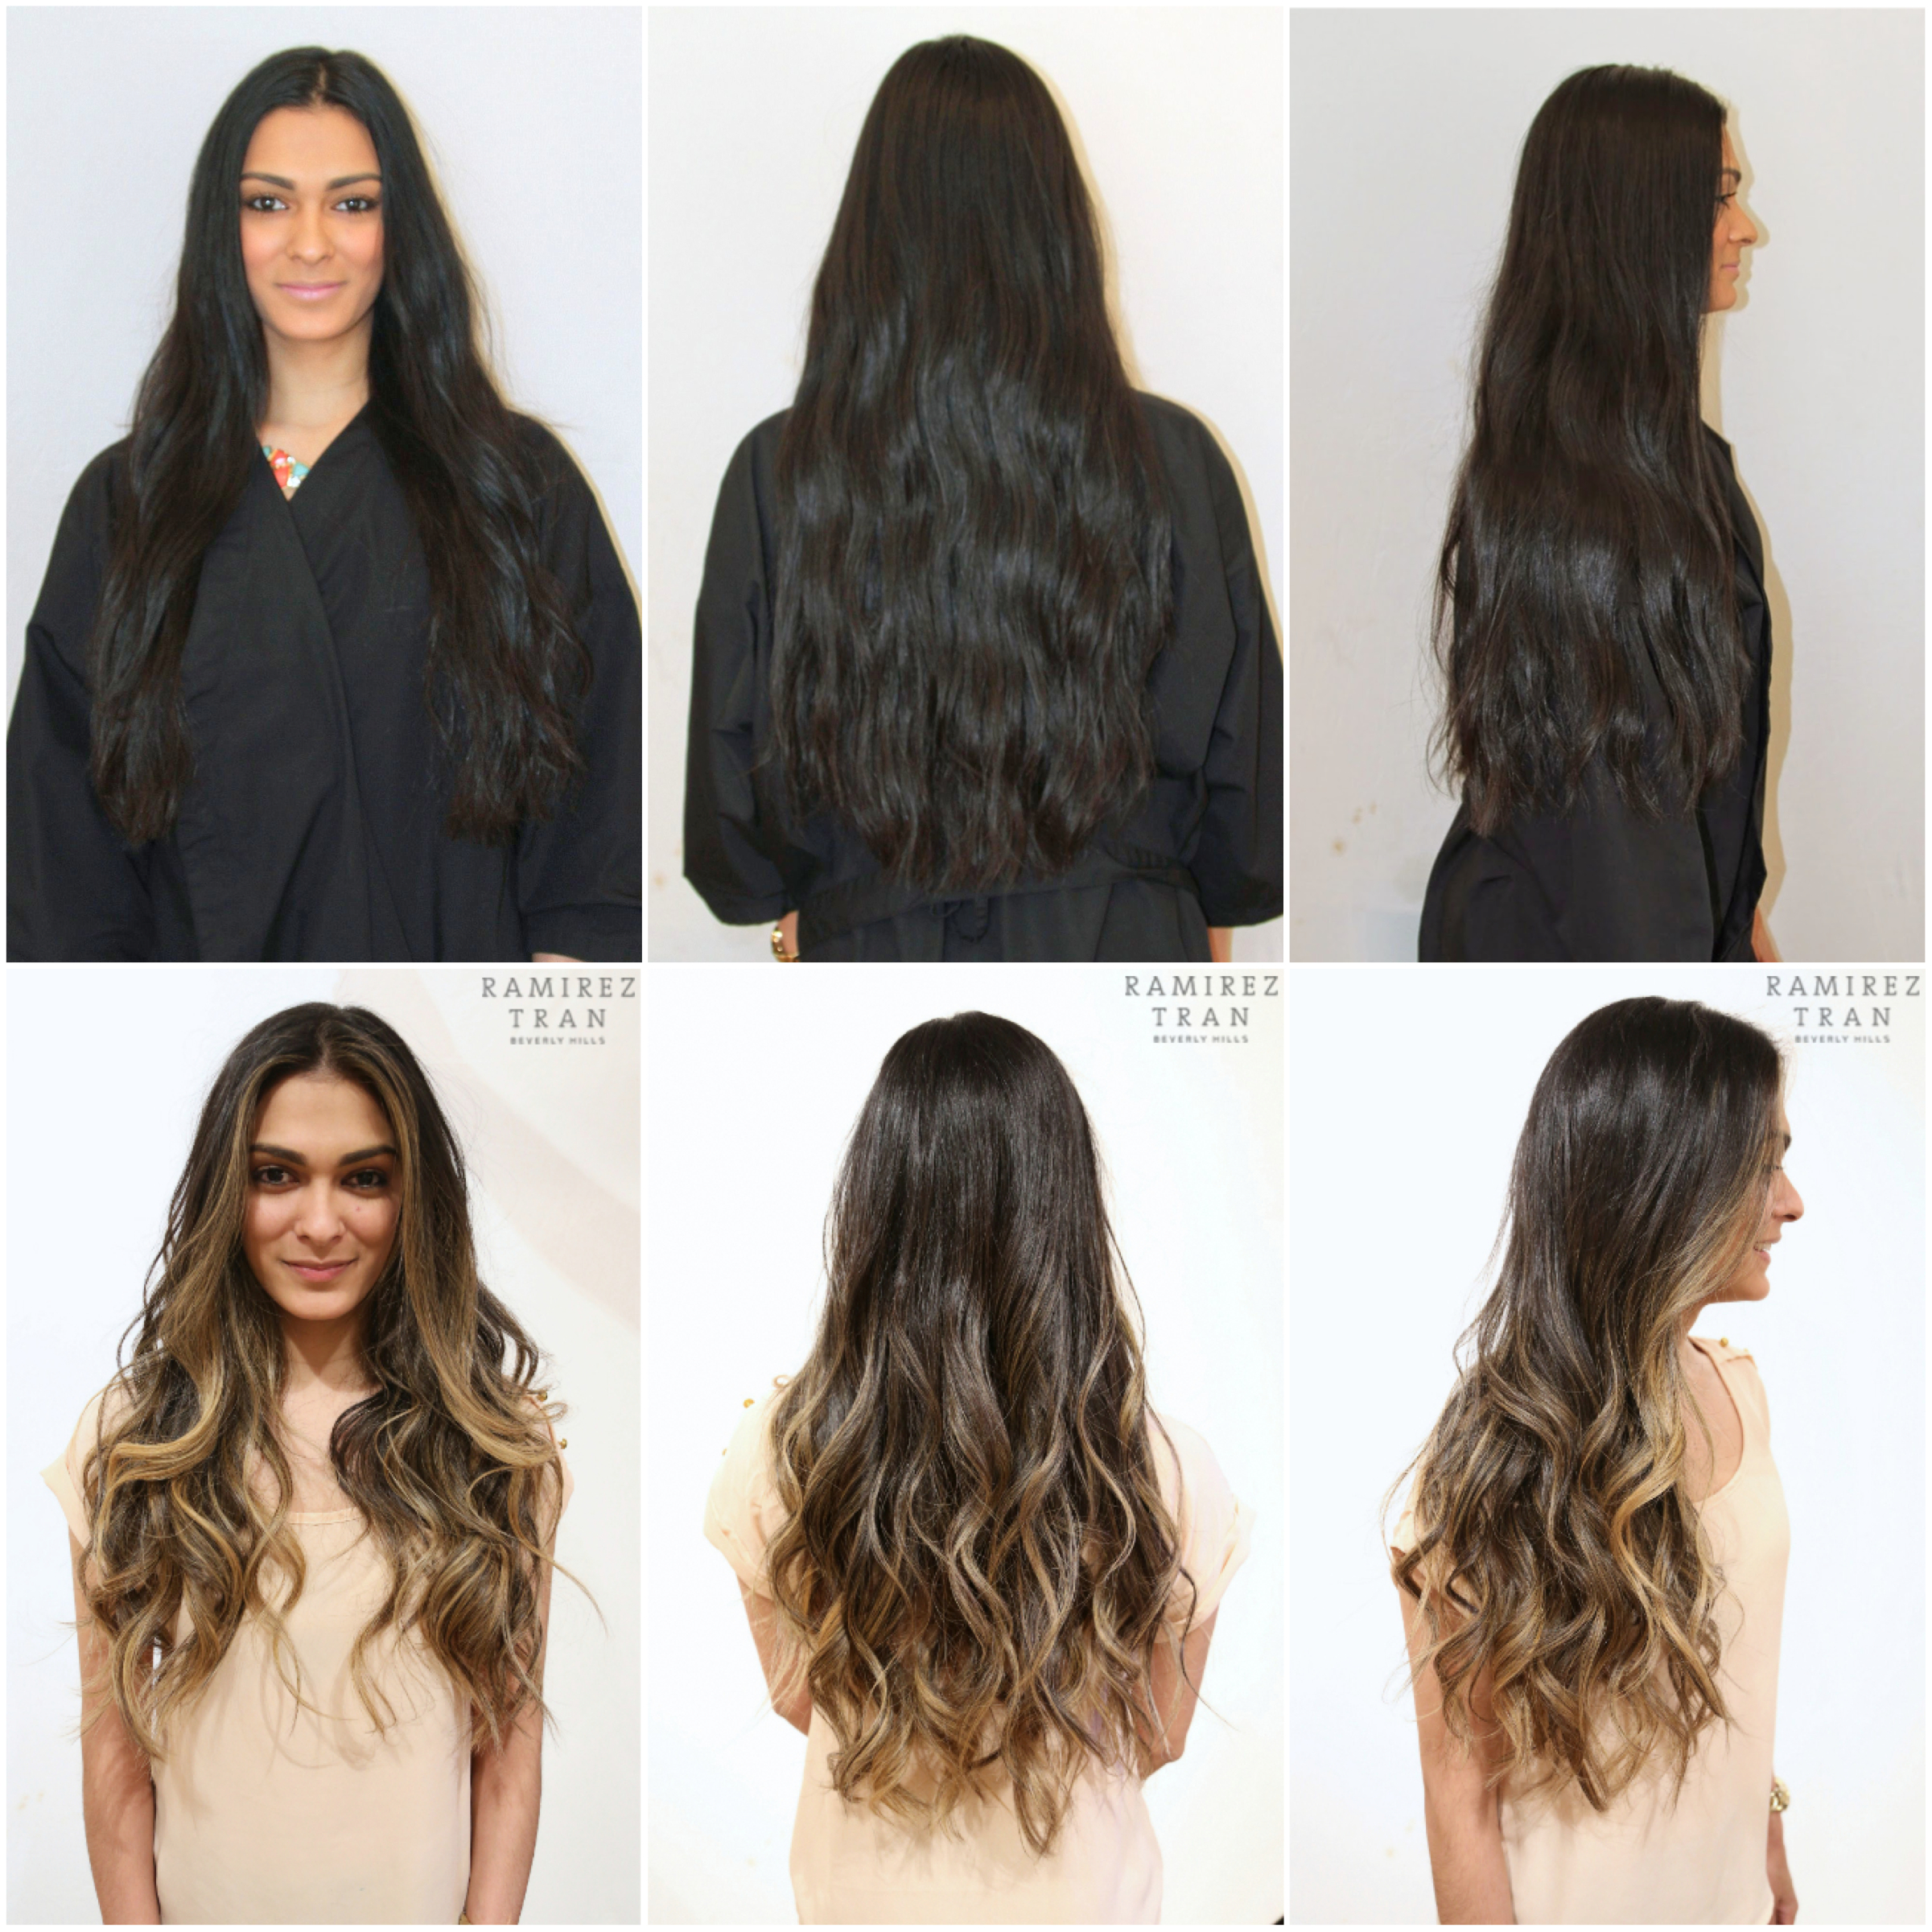 Before And After Archives Page 30 Of 65 Ramirez Tran Salon